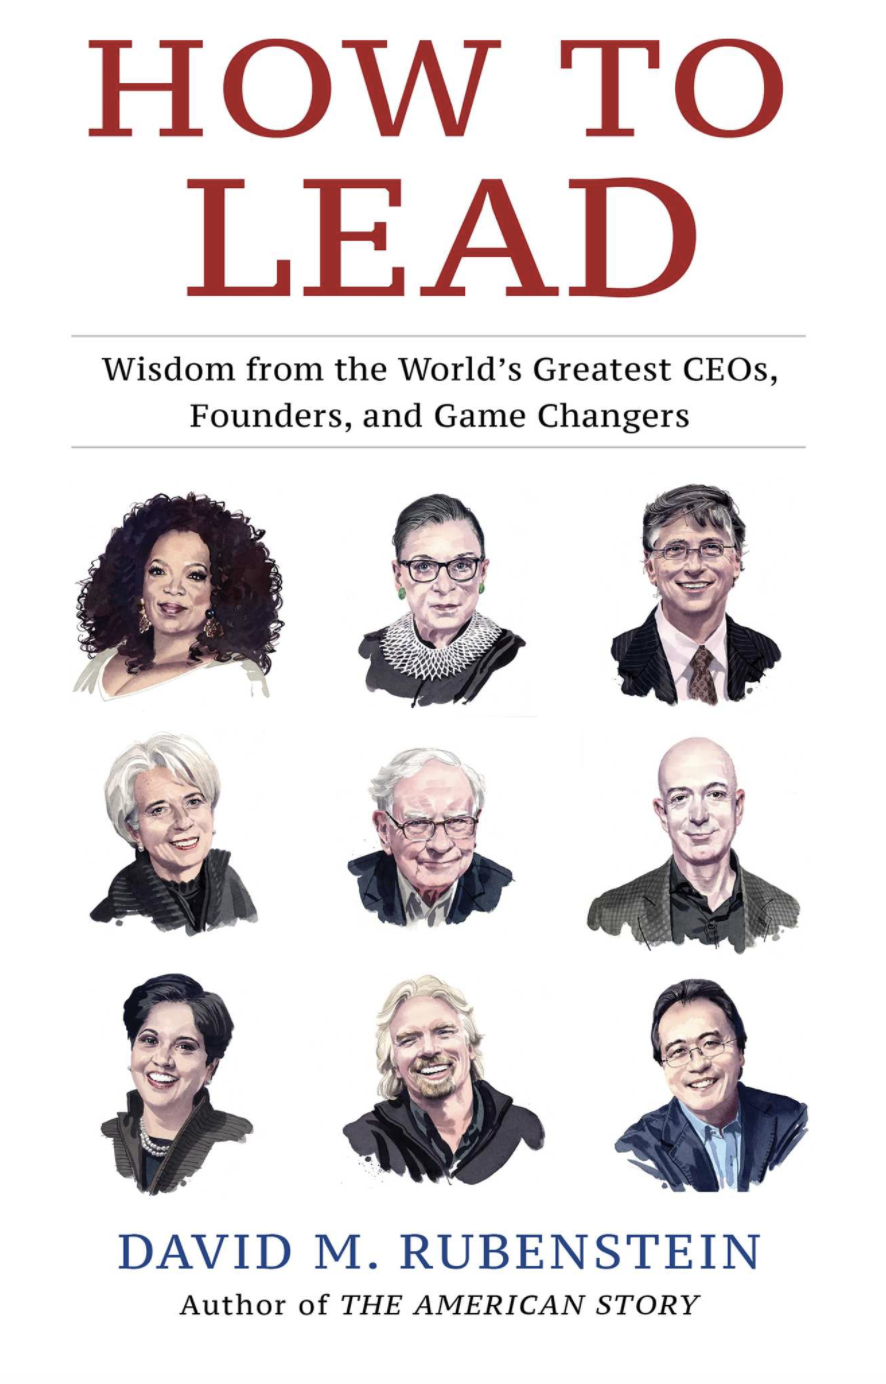 """The cover of """"How to Lead,"""" a collection of interviews from David Rubenstein, co-founder and co-chairman of private equity firm The Carlyle Group."""